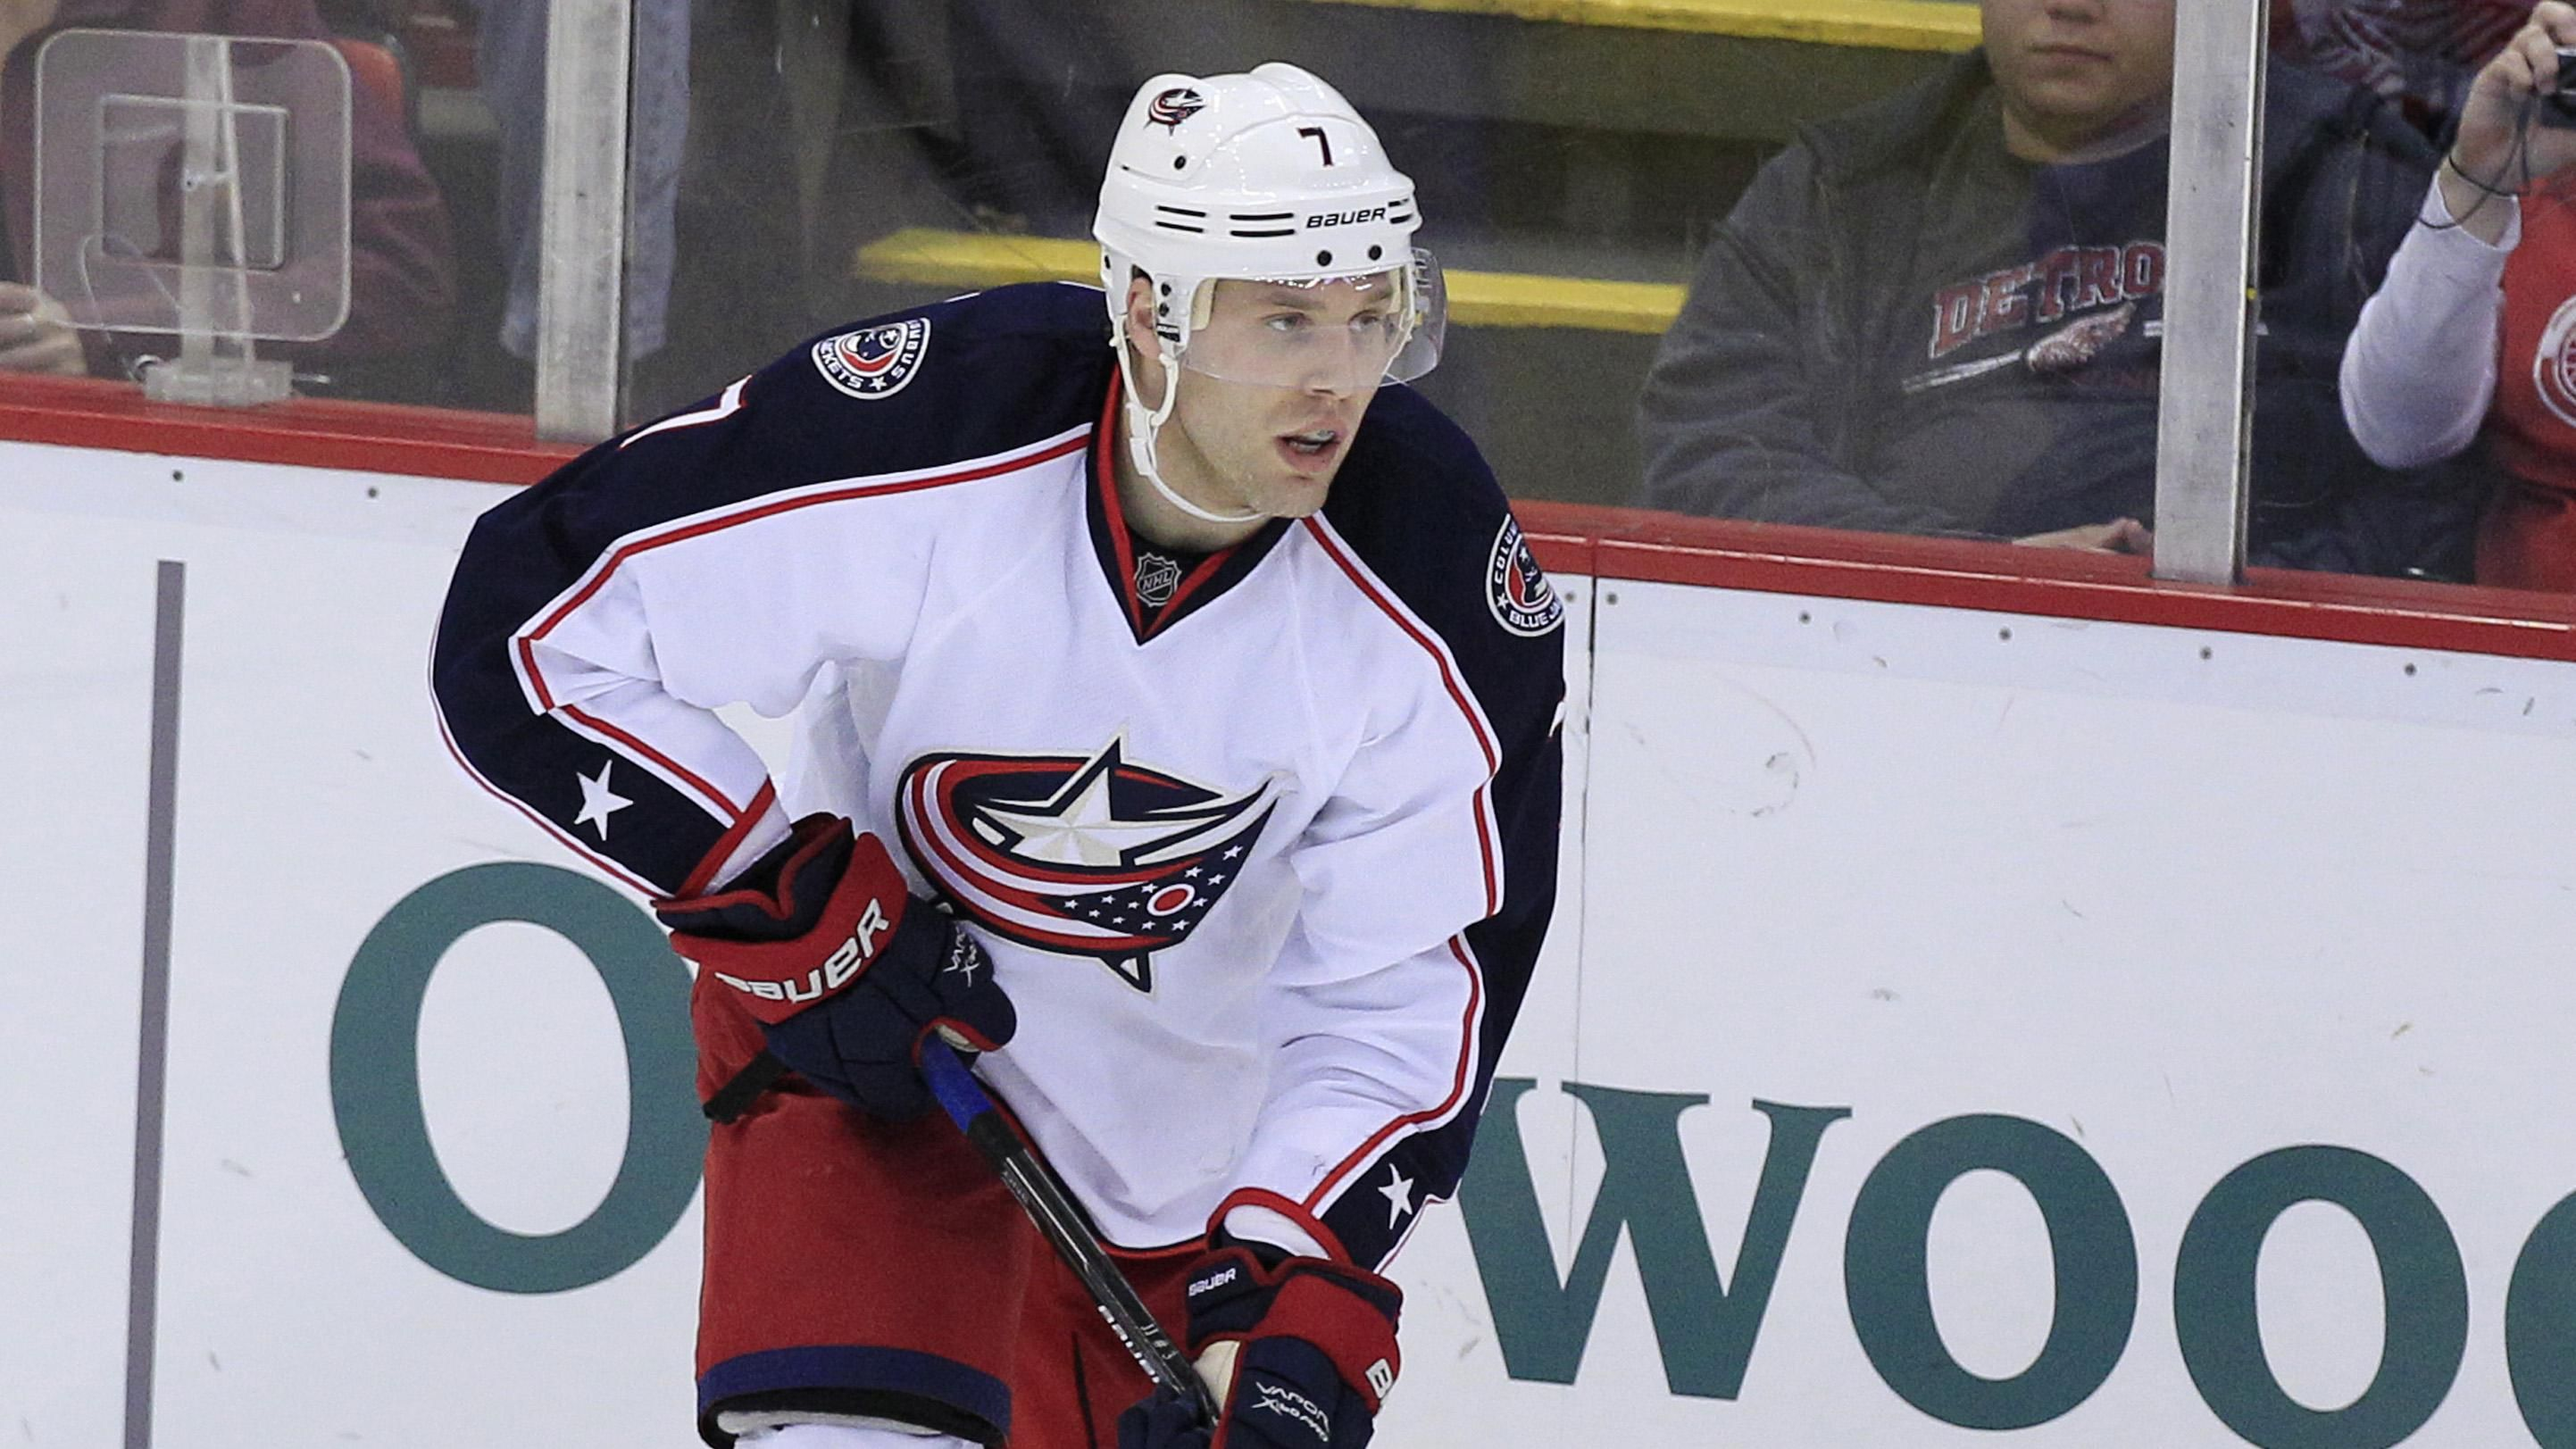 Blue Jackets hockey player Jack Johnson is bankrupt, who is to ...